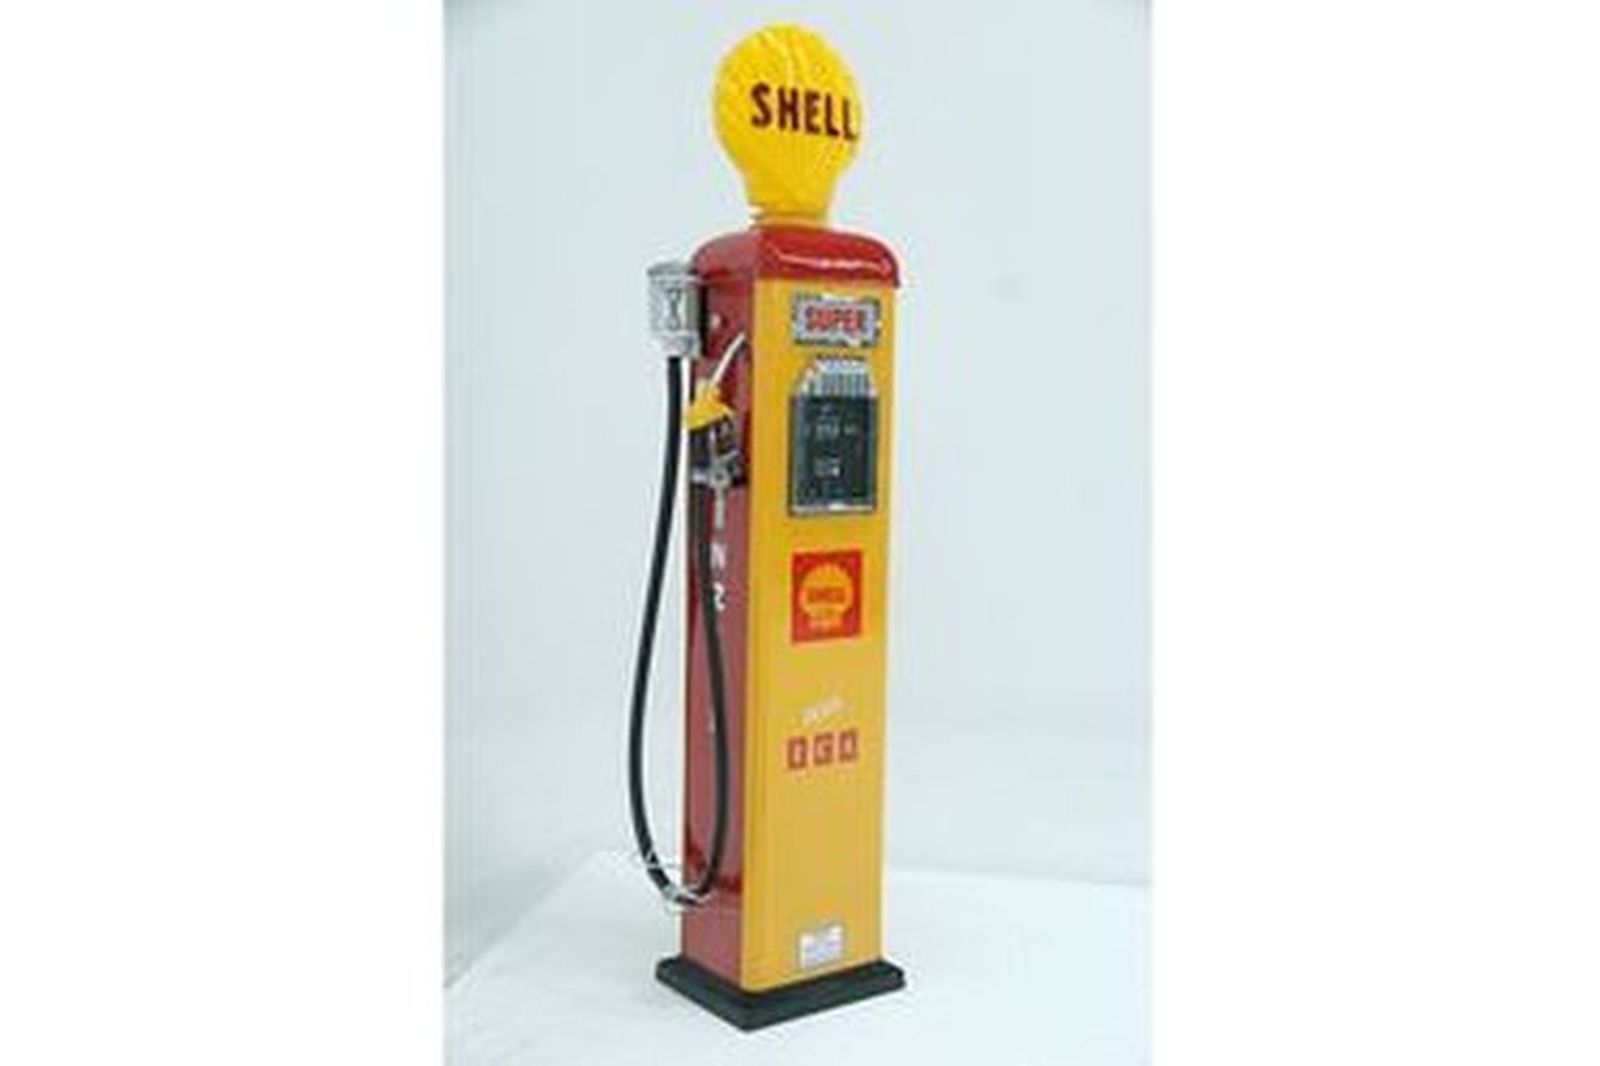 Petrol Pump - CM Gilbarco Petrol Bowser Restored with Reproduction Shell Clam